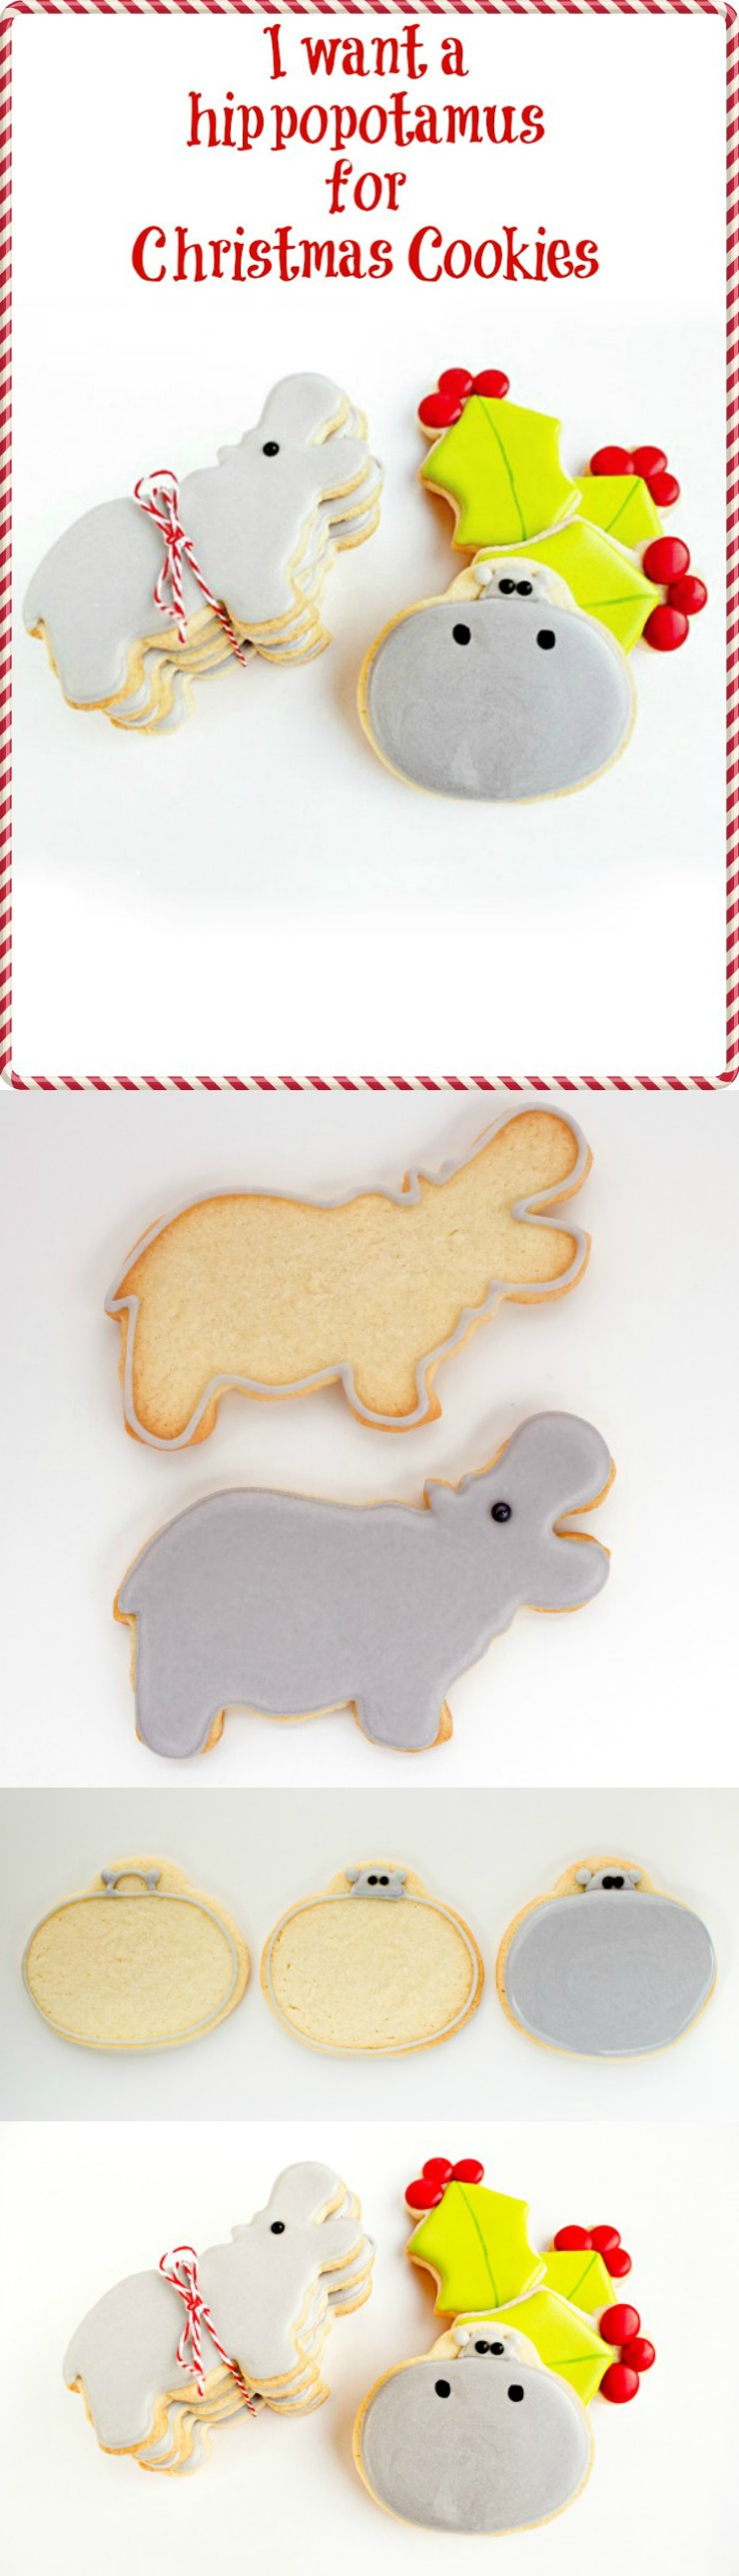 I want a Hippopotamus for Christmas Cookies | The Bearfoot Baker